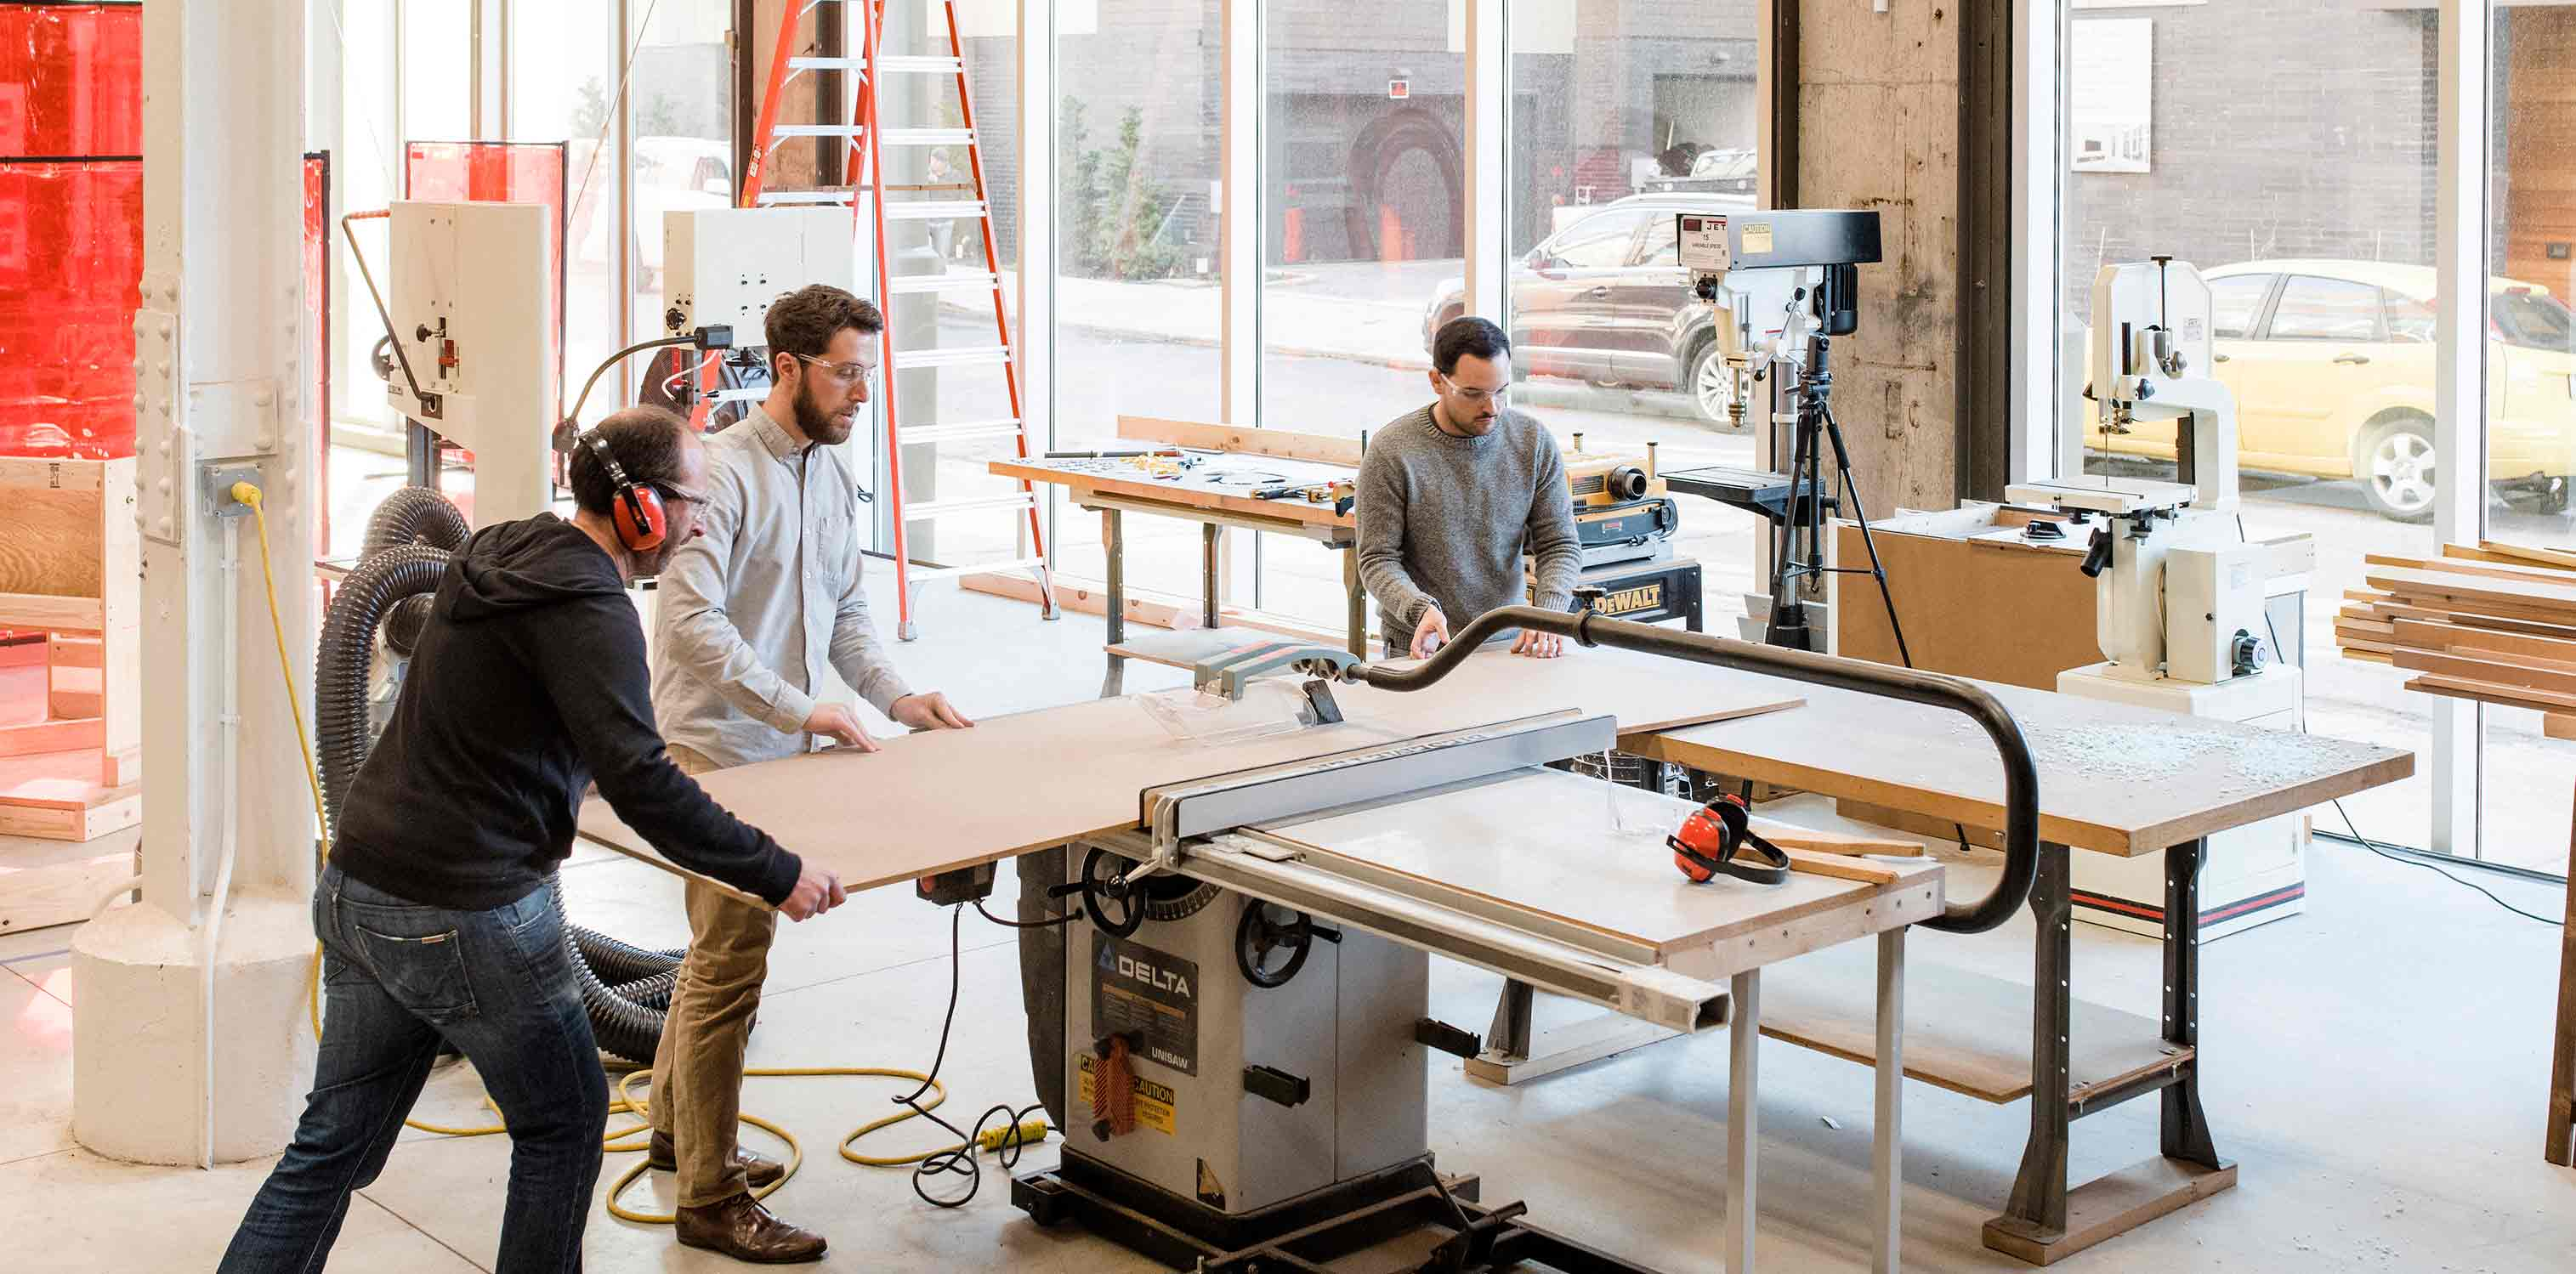 <p>Researchers and architects work side by side, often in the studio's workshop as they create full-scale prototypes and simulations.<br>&nbsp;<br /><small>&copy;Chris Leaman</small></p>